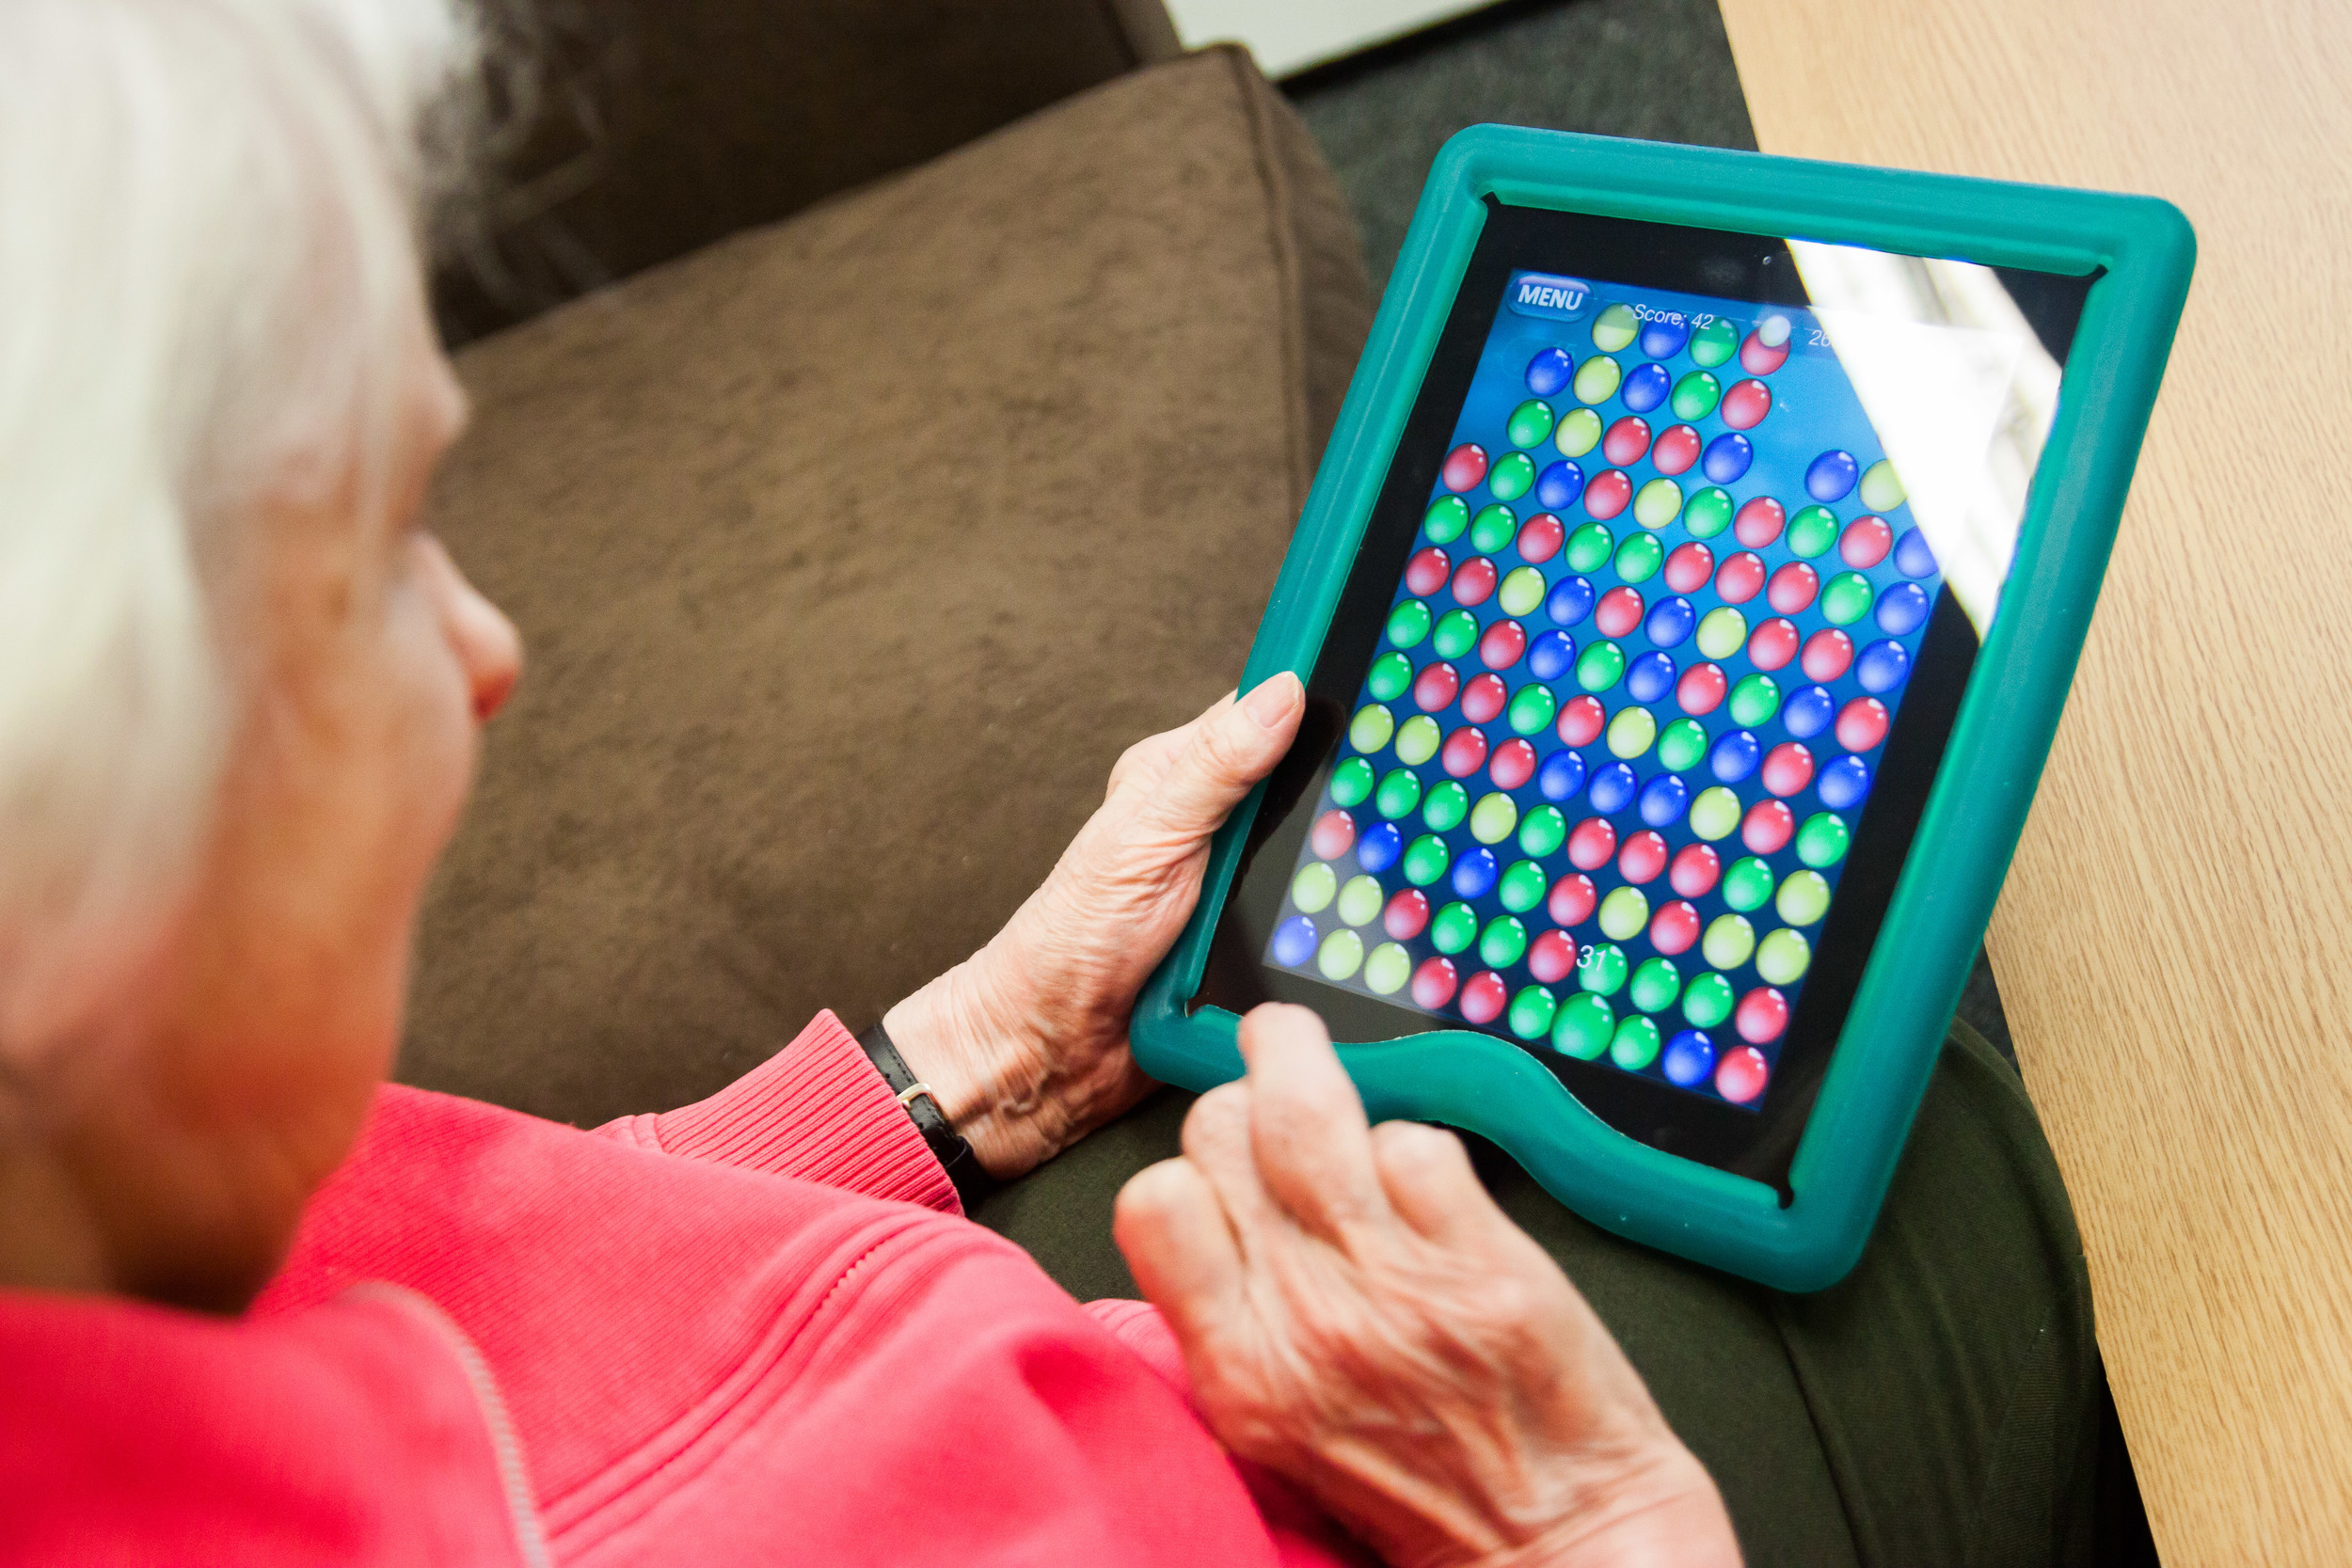 A woman enjoying Bubble Explode, one of the games identified through the AcTo Dementia project